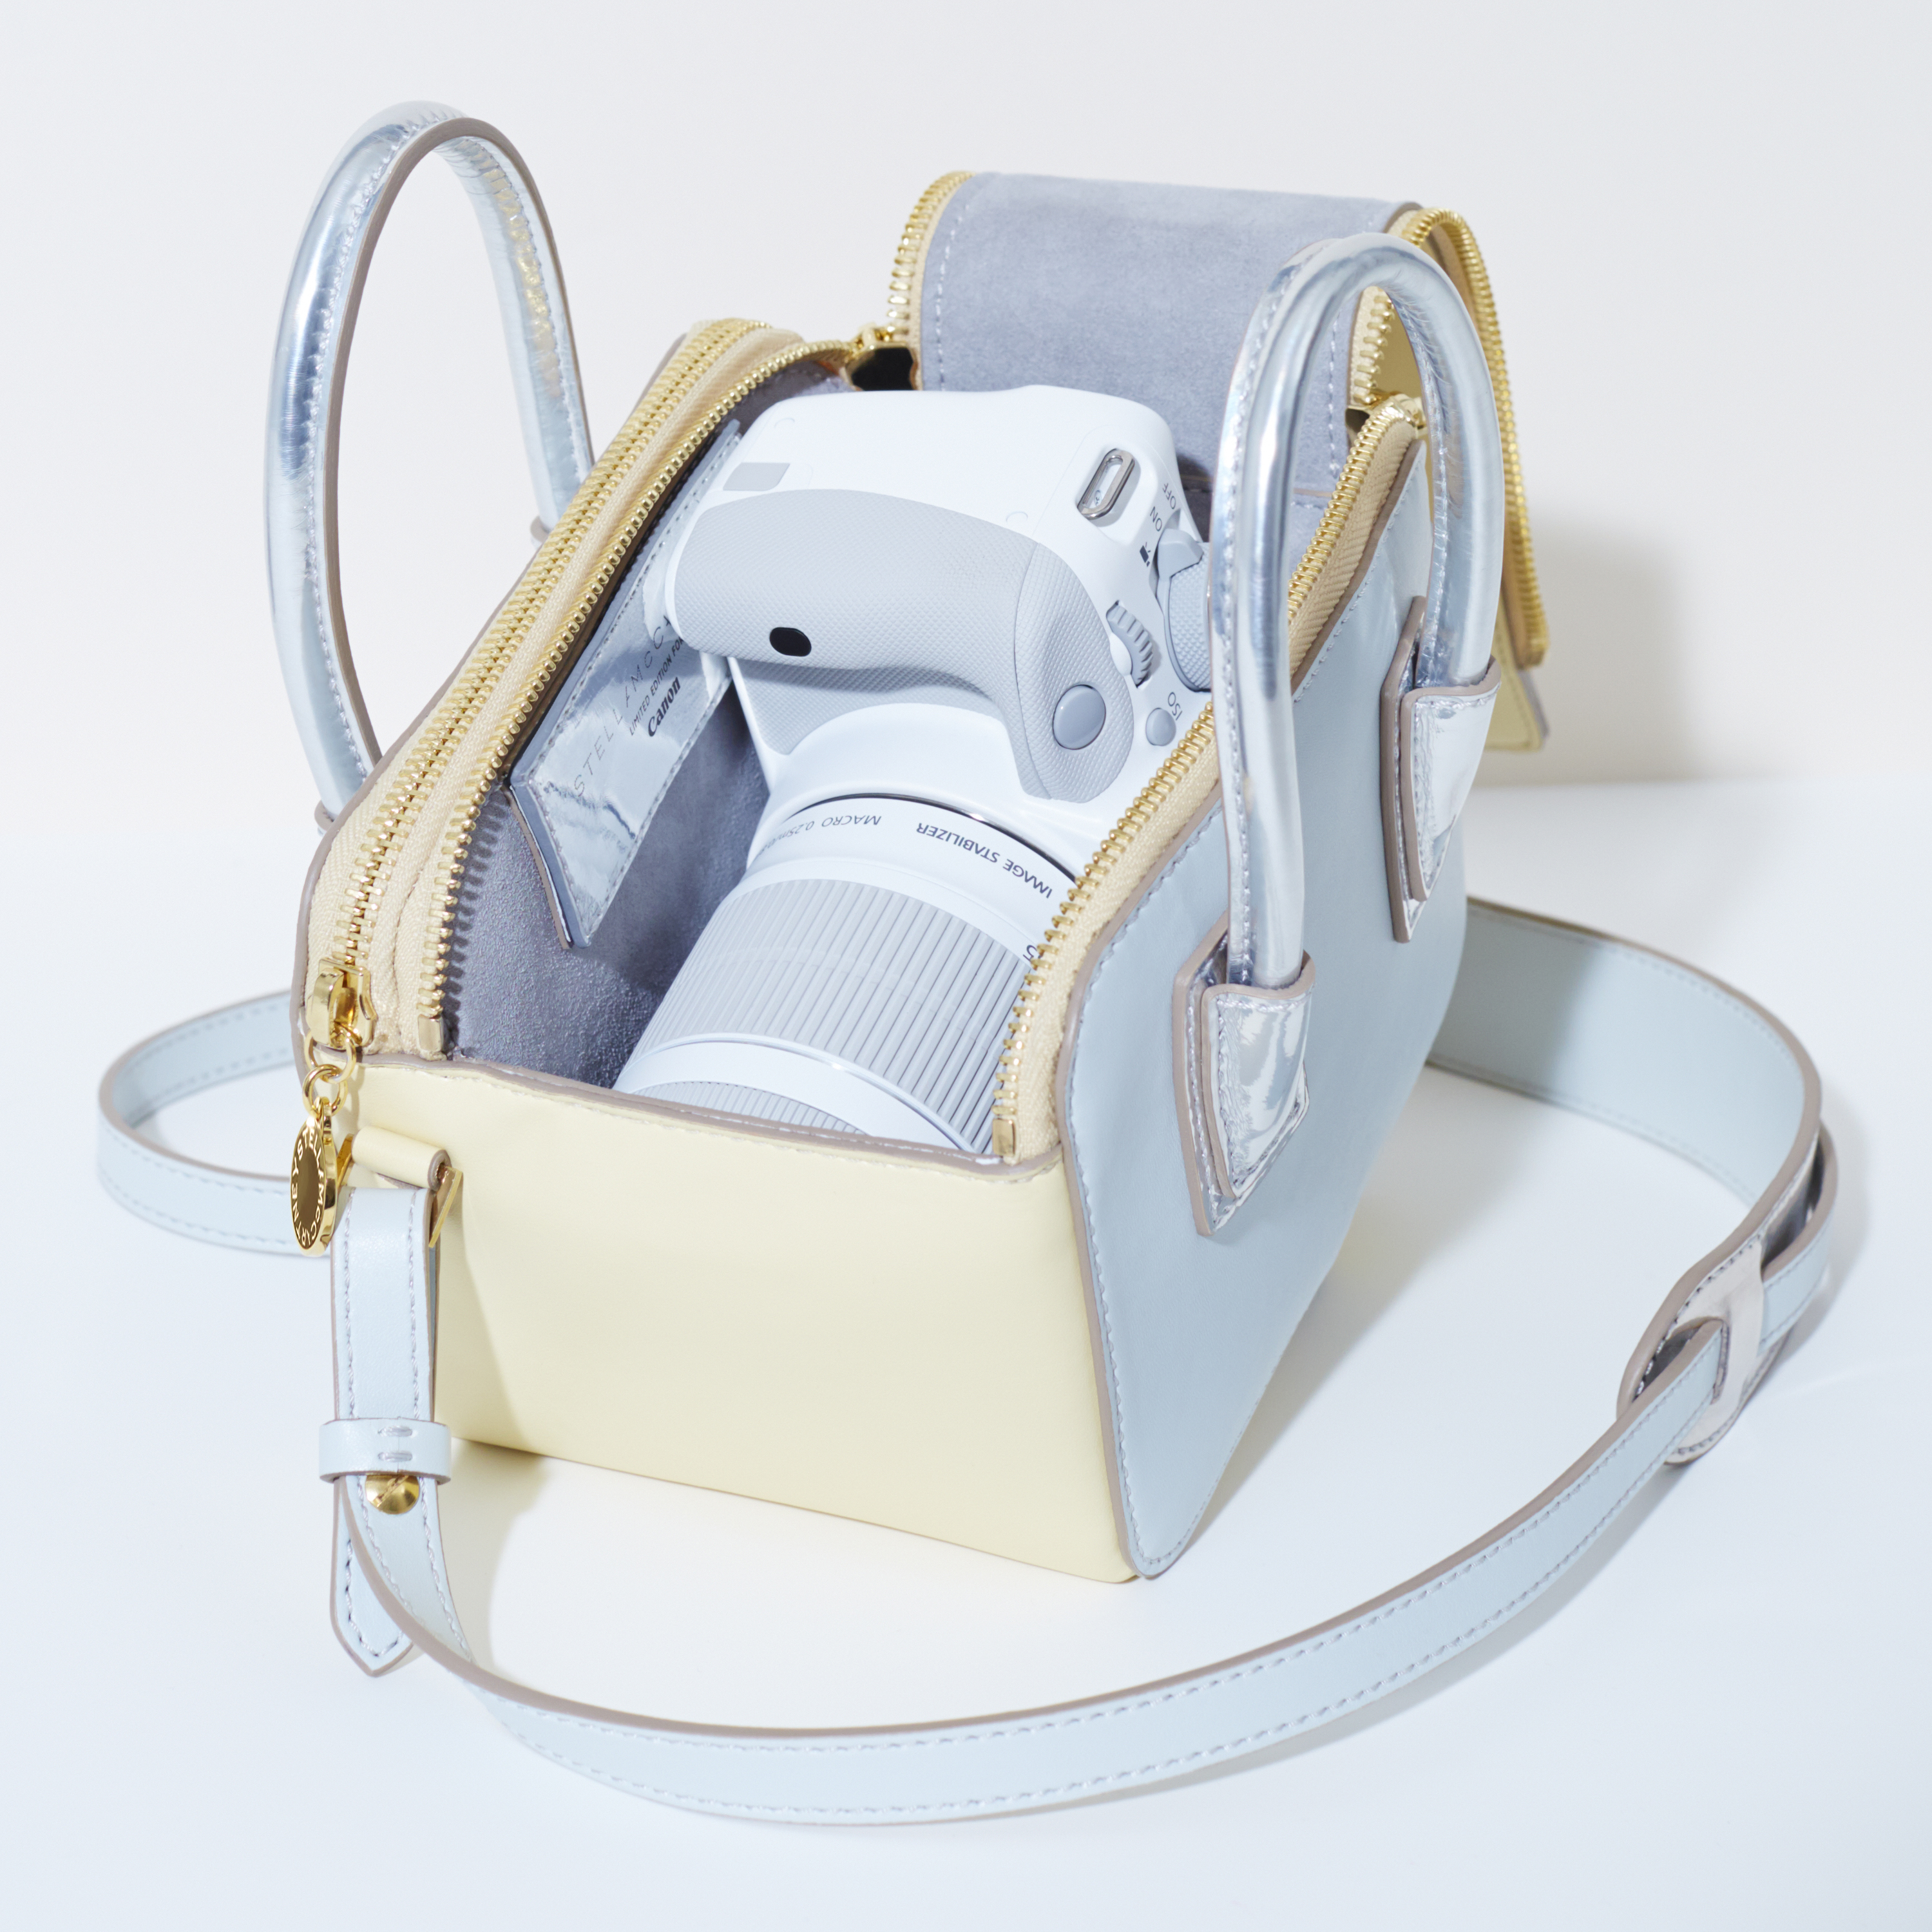 cccbae2520b60 Canon UK introduces limited edition Stella McCartney bag with white EOS 100D